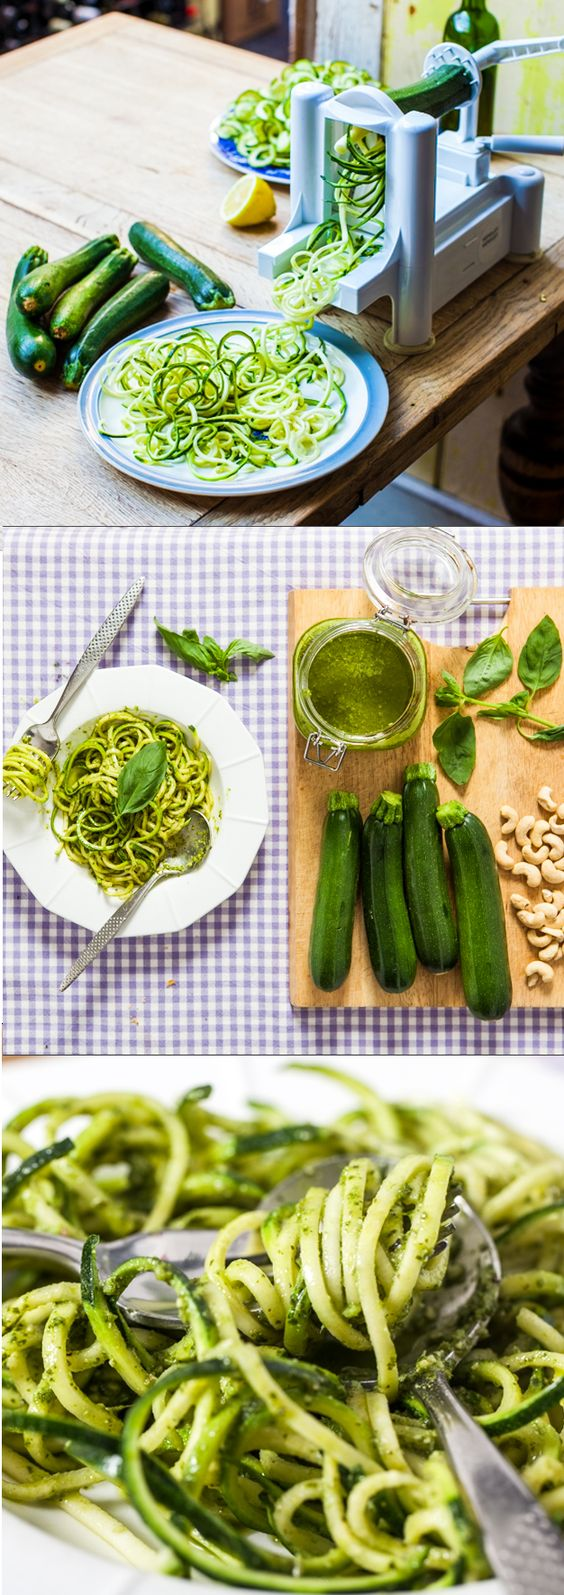 Our much loved COURGETTI (spaghetti made from courgettes) made using the Hemsley Spiralizer. Make simple, delicious and nutrient-rich meals by adding spiralized vegetables to soups, salads and more. Click to view our favourite spiralizer recipes.: